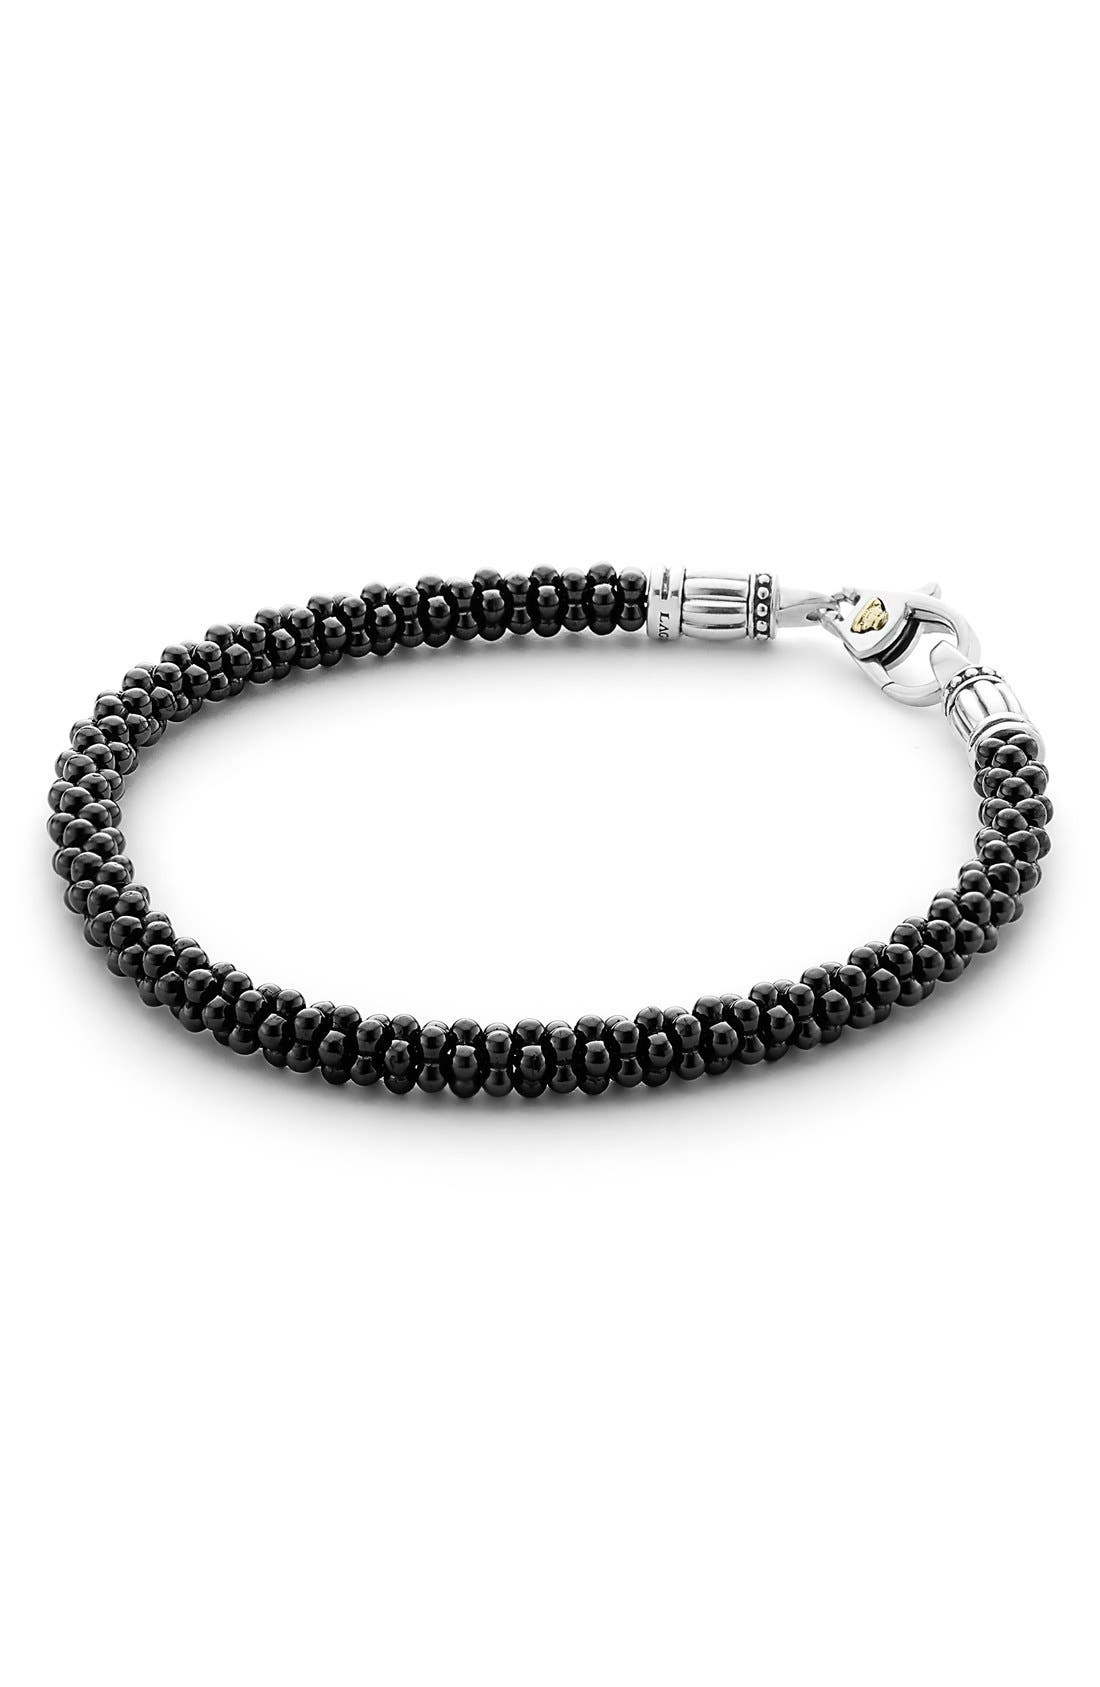 LAGOS 'Black & White Caviar' Bracelet, Main, color, BLACK/ GOLD